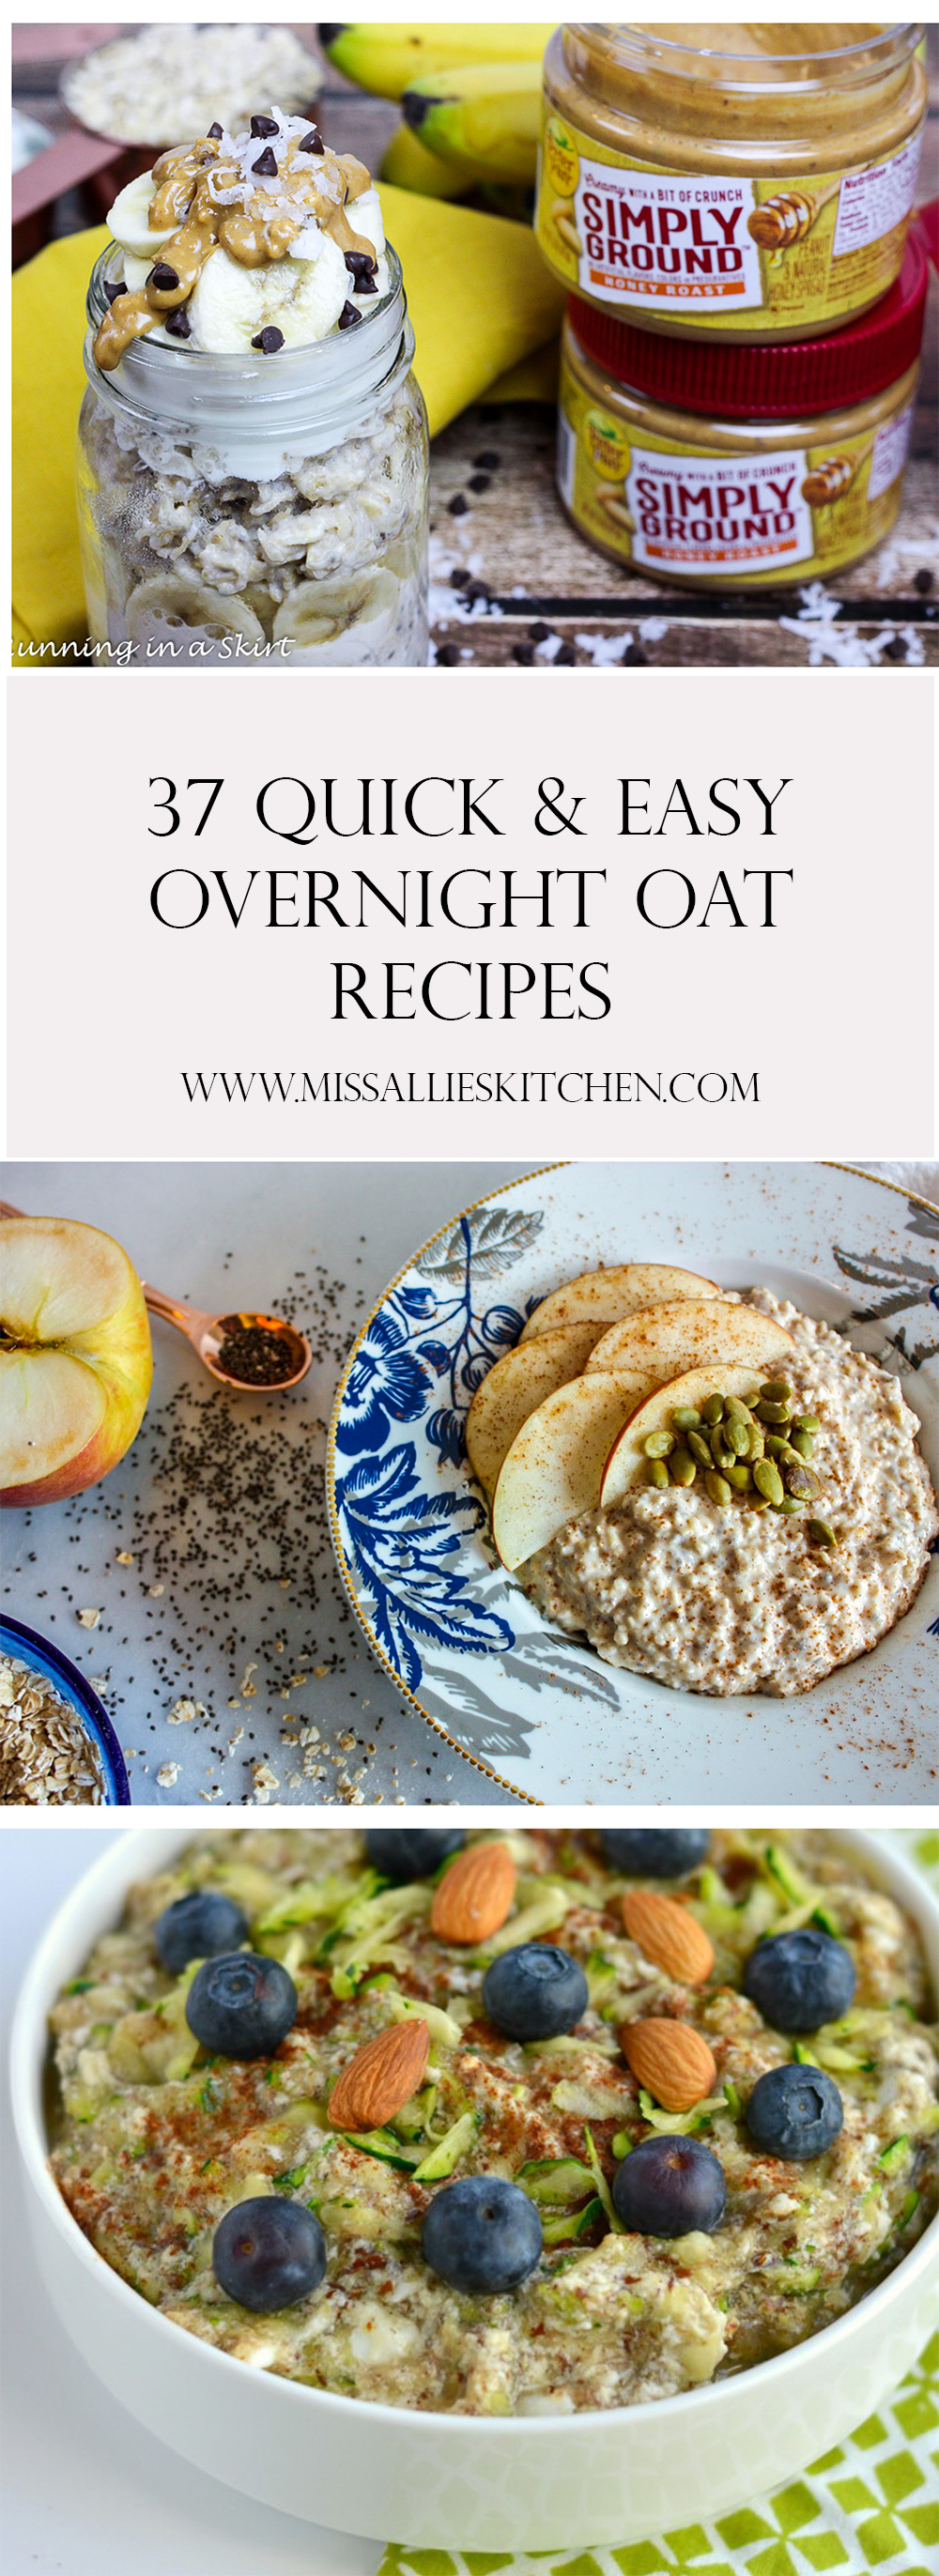 37 Quick & Easy Overnight Oat Variations!